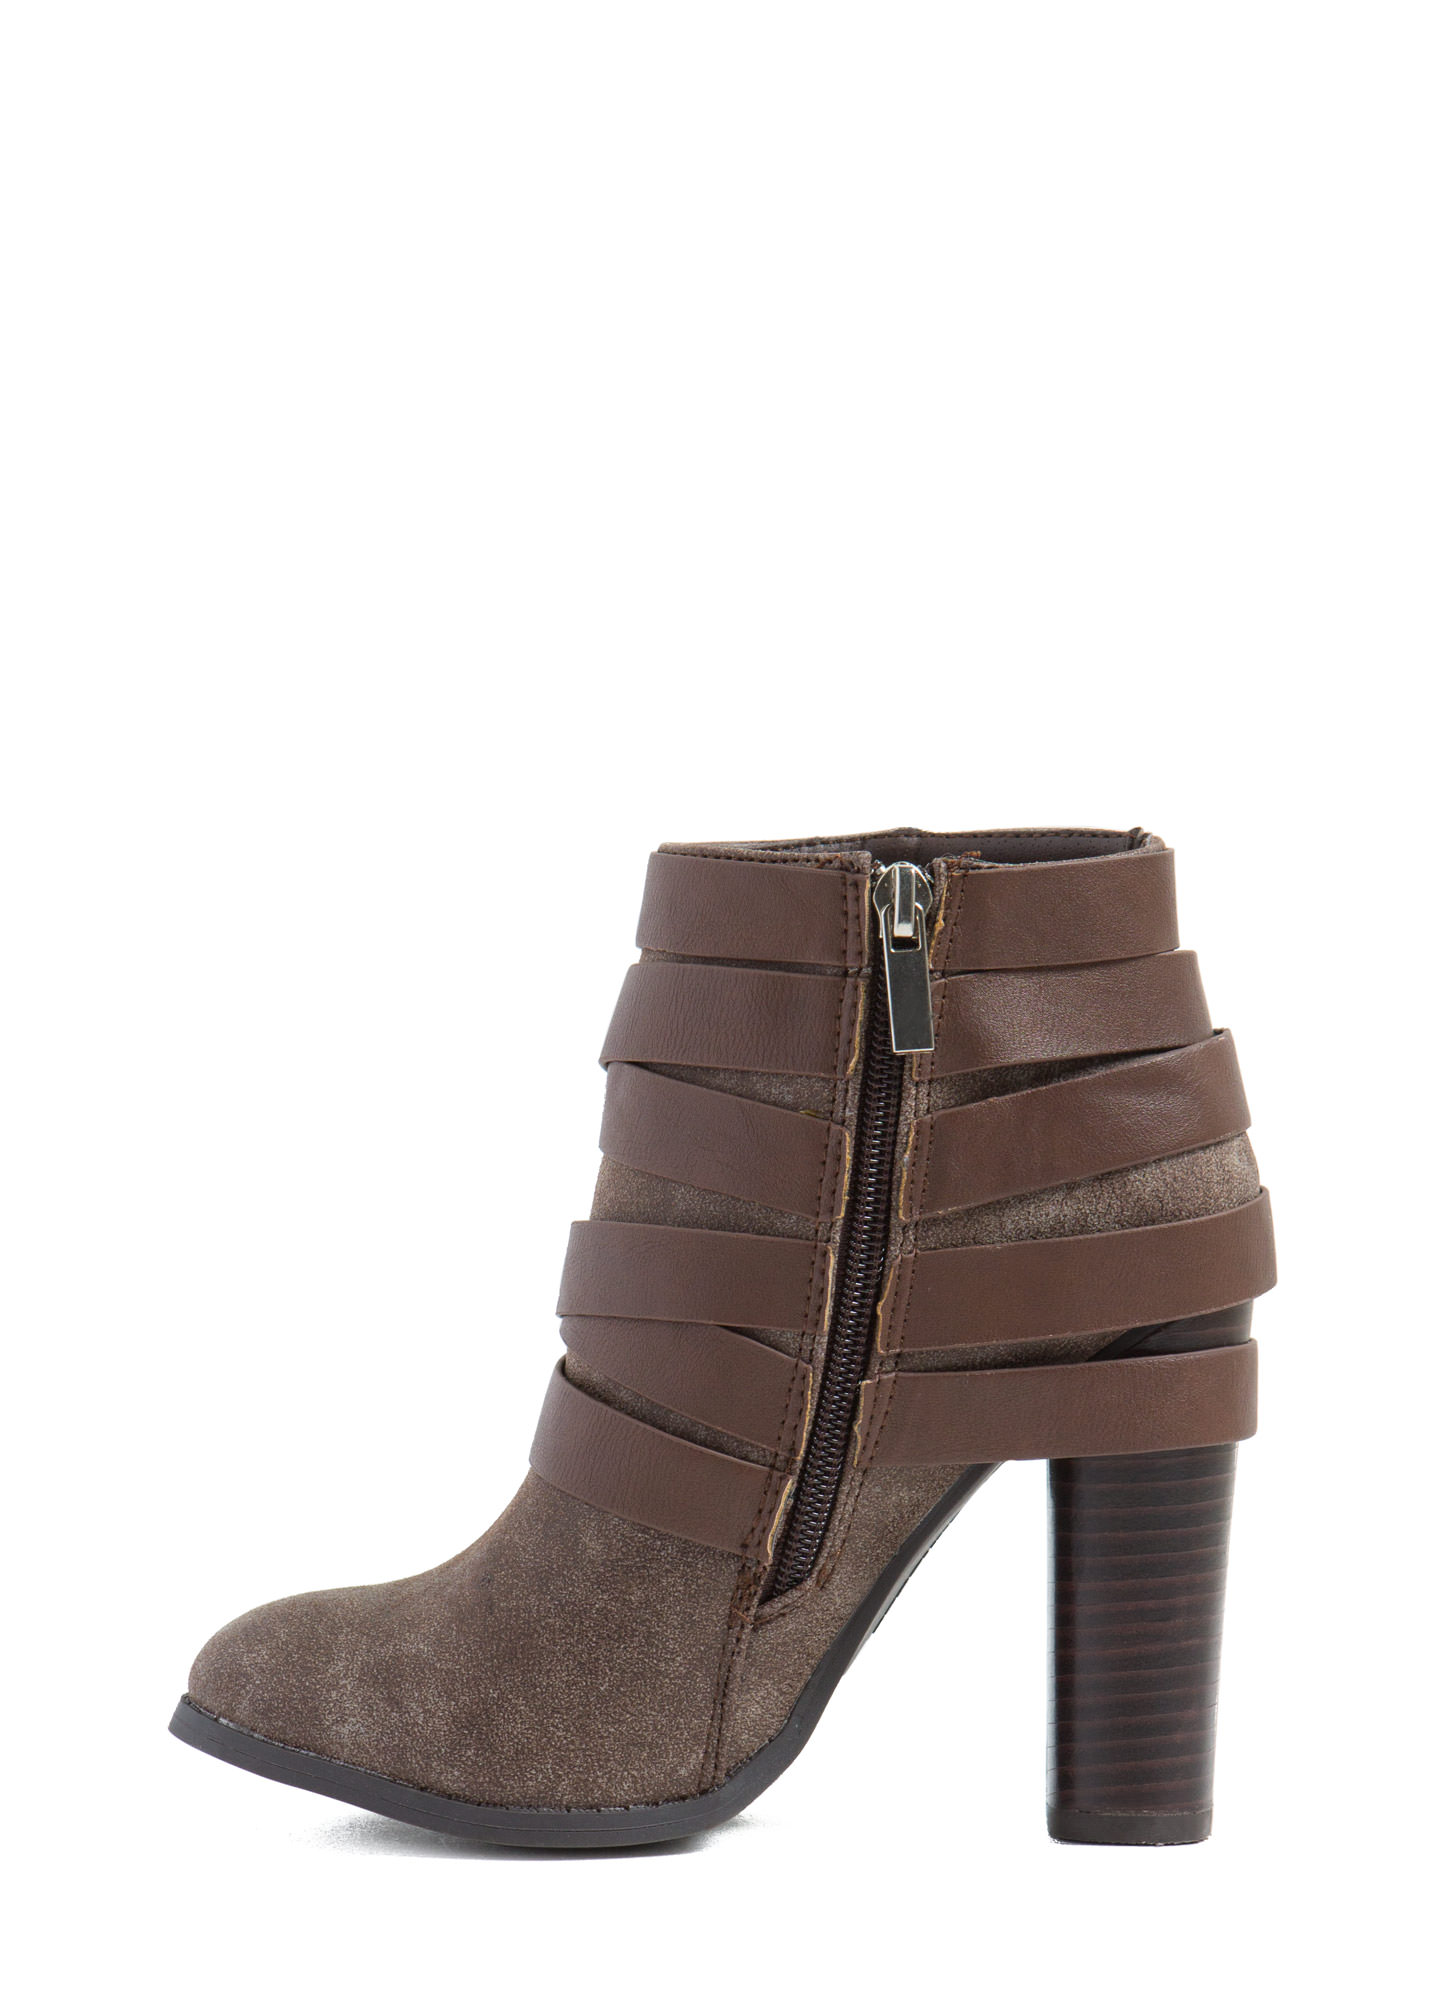 That's A Wrap Studded Booties BROWN